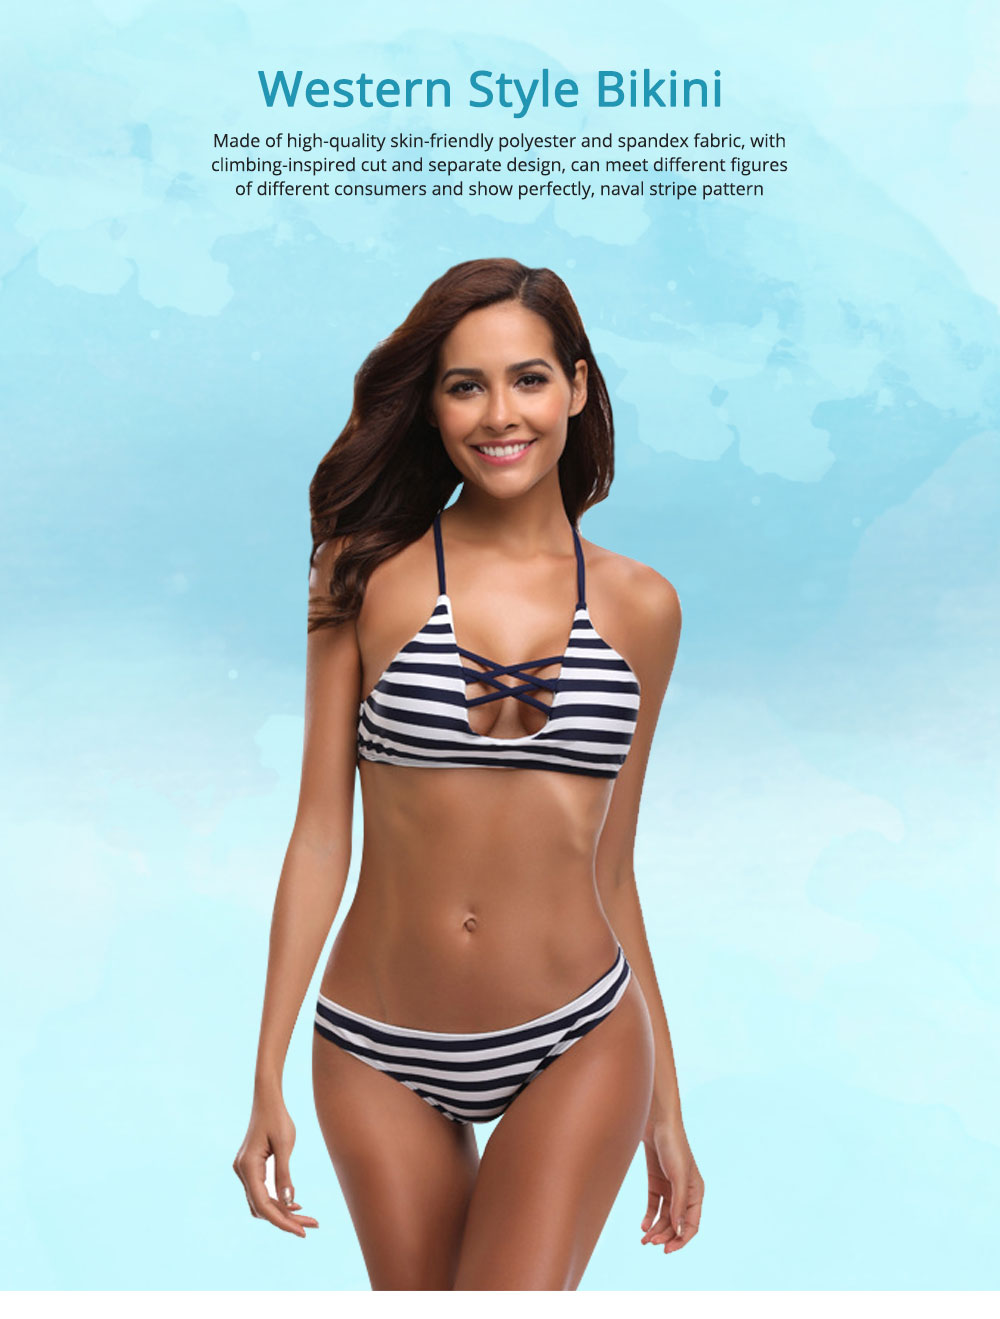 Naval Stripe Separate Sexy Lady's Swimsuit, Western Style Bikini with Polyester and Spandex Fabric 0